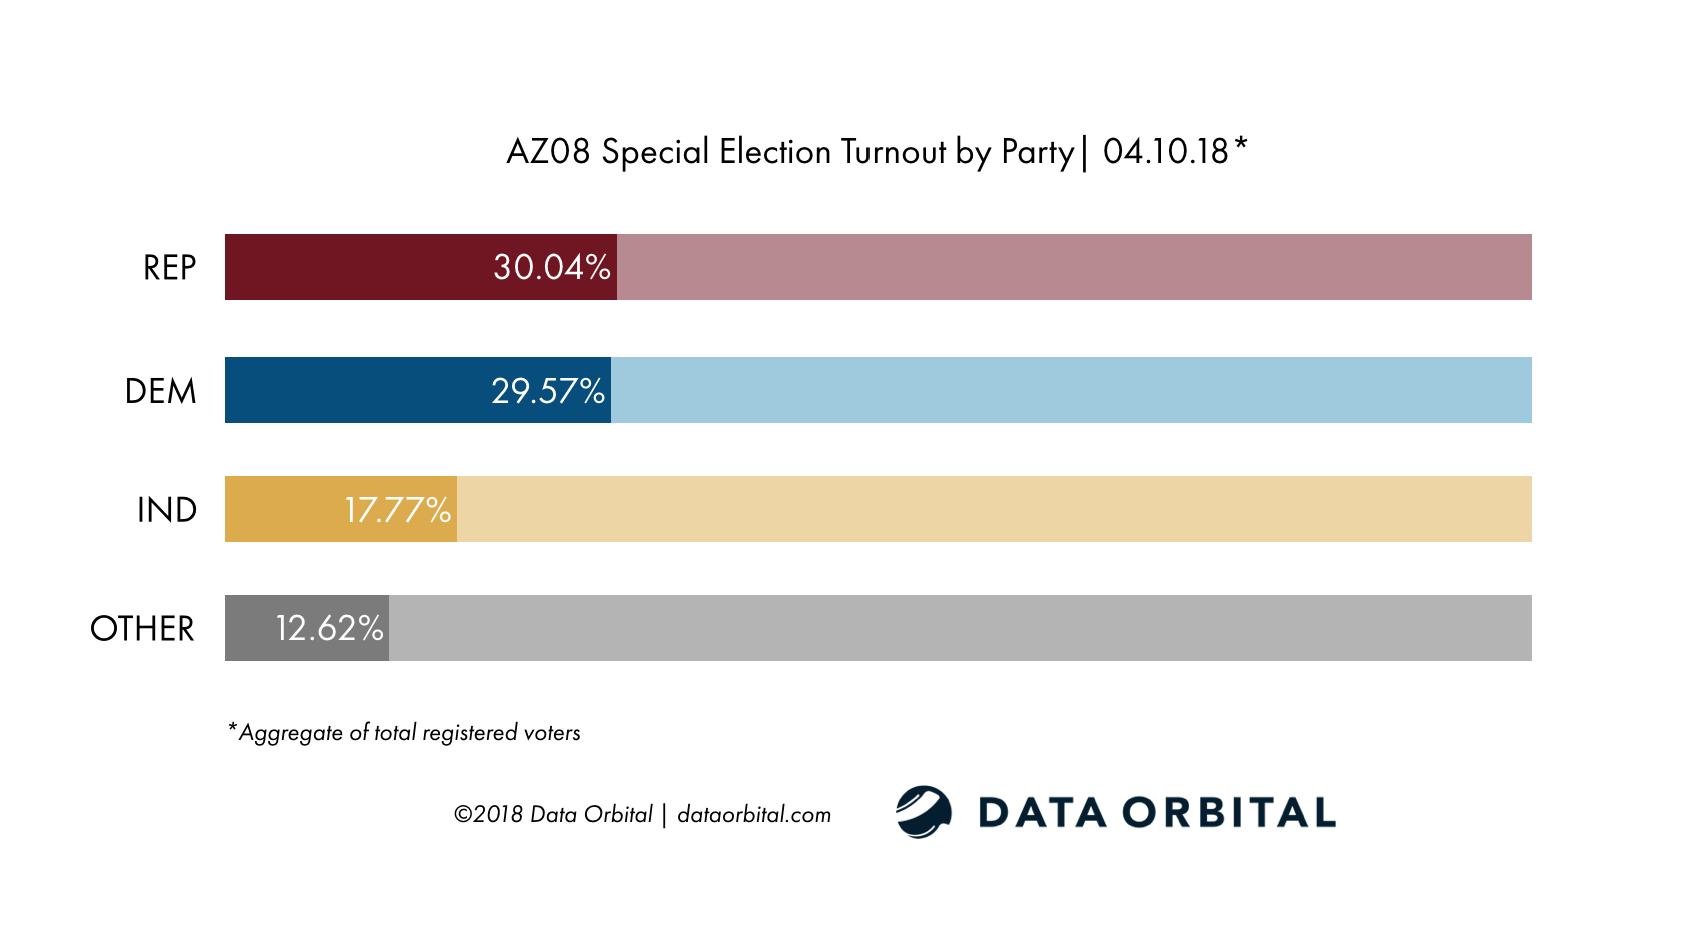 AZ08 Special Election Ballot Returns 04.10.18 Turnout by Party